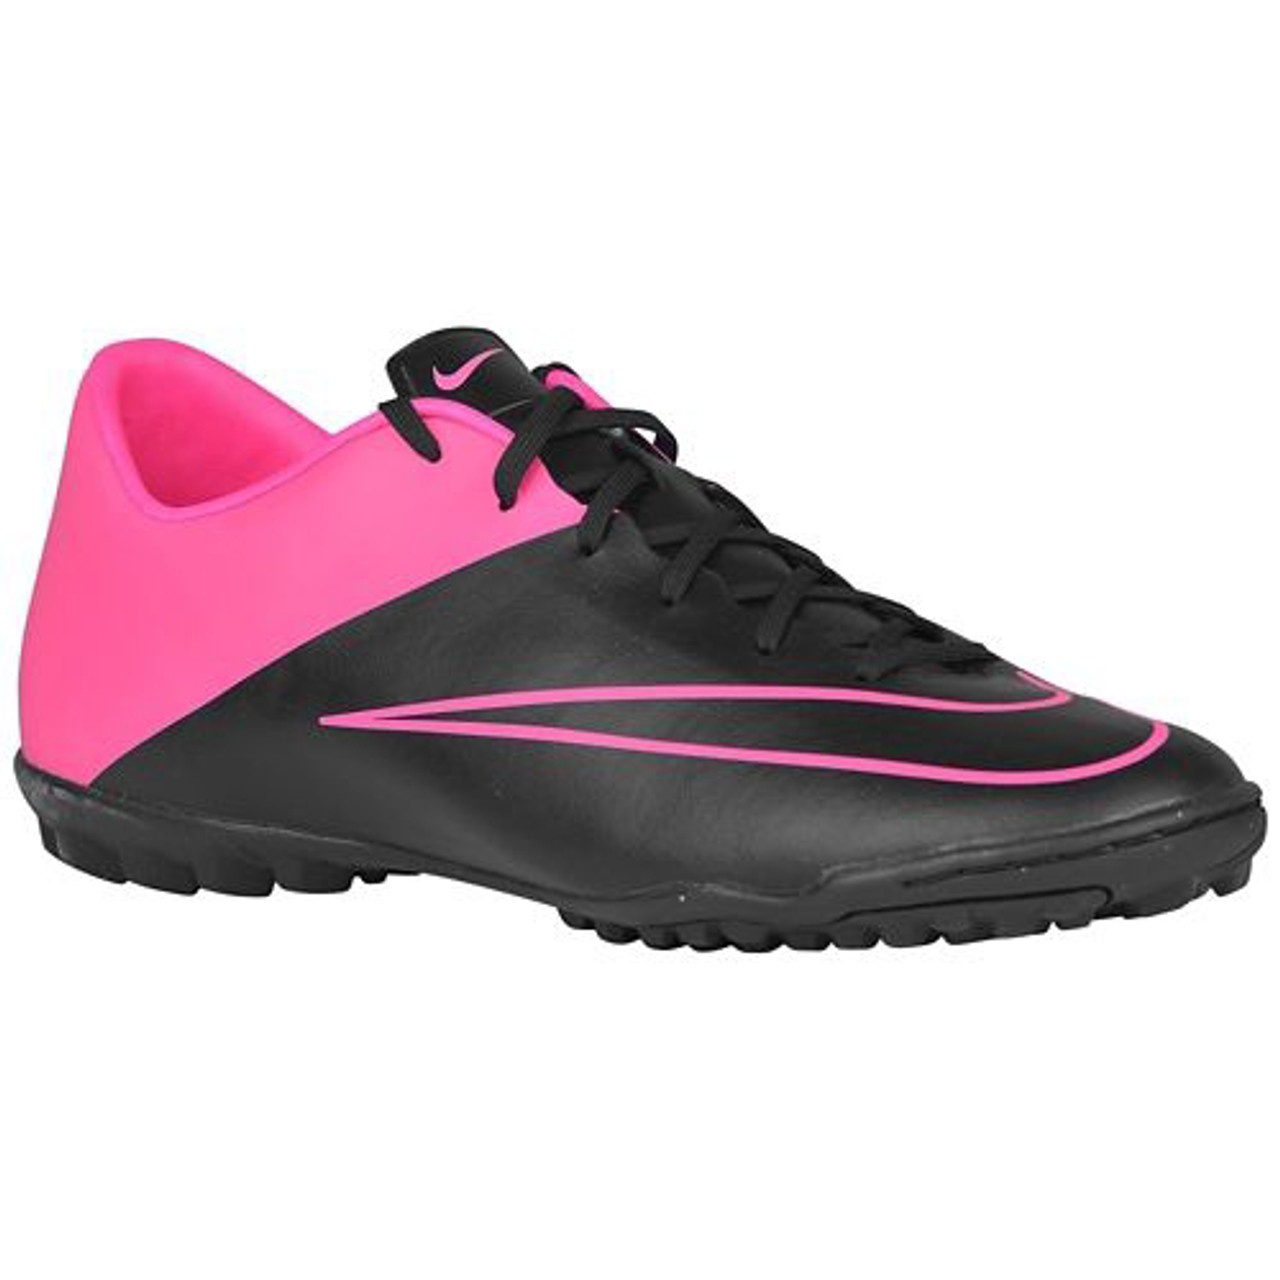 low priced 2a615 17425 NIKE MERCURIAL VICTORY V TF BLACK HYPER PINK turf soccer shoes - Soccer Plus